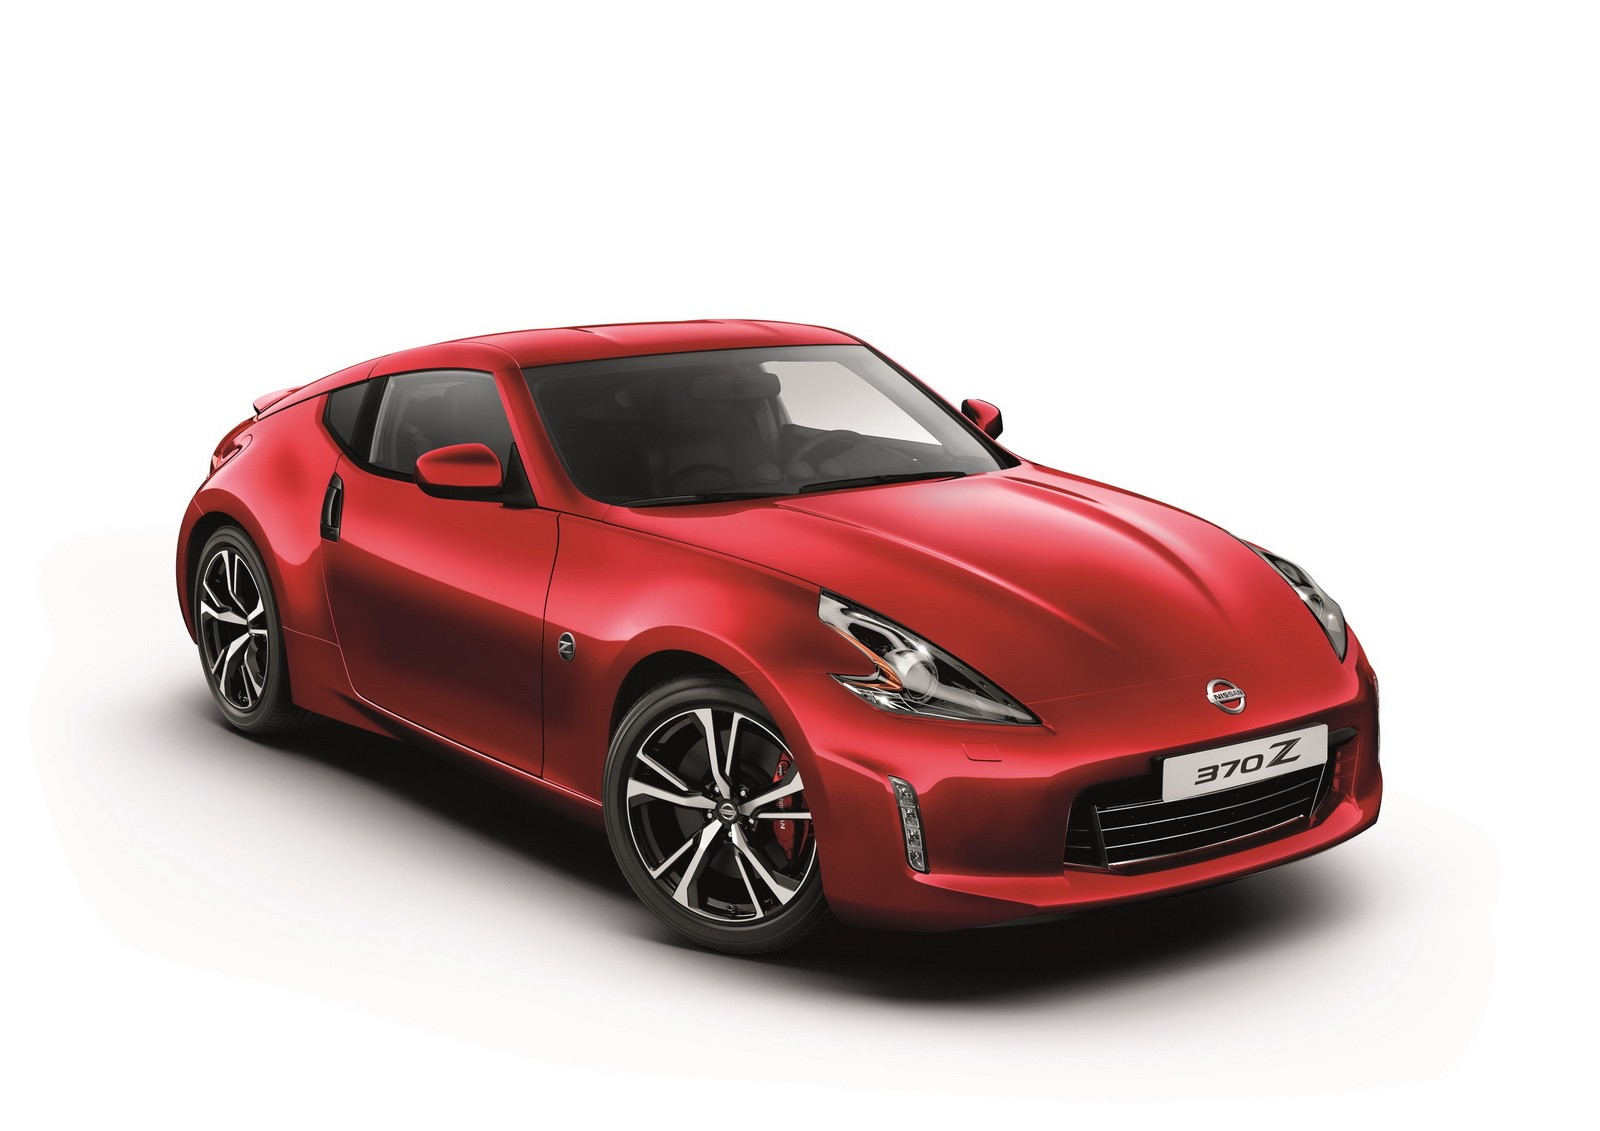 Next-Generation Nissan Z Car Confirmed By Design Head - autoevolution